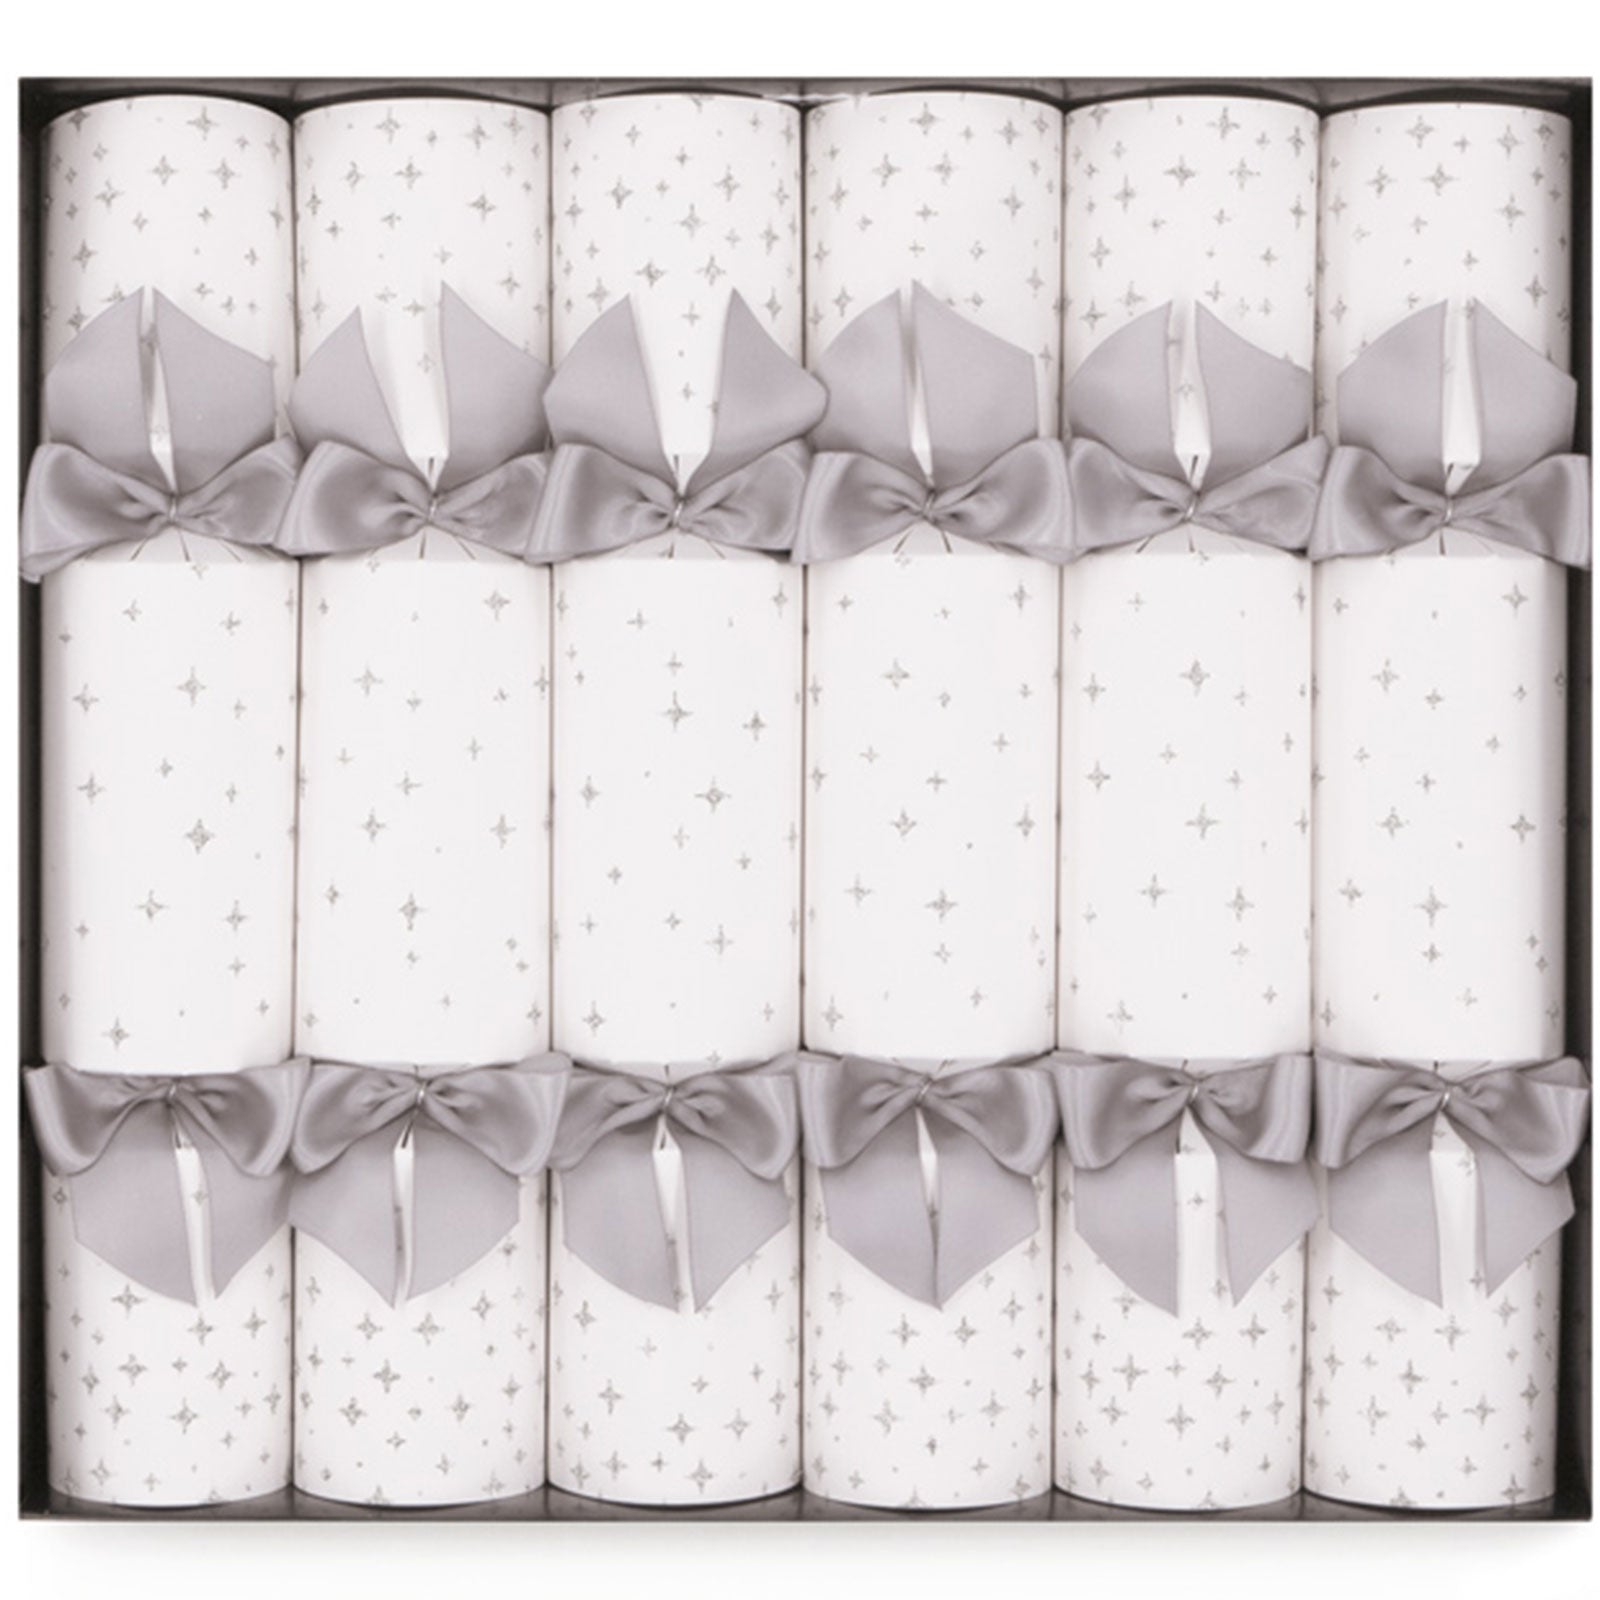 Polar Sky Christmas Crackers